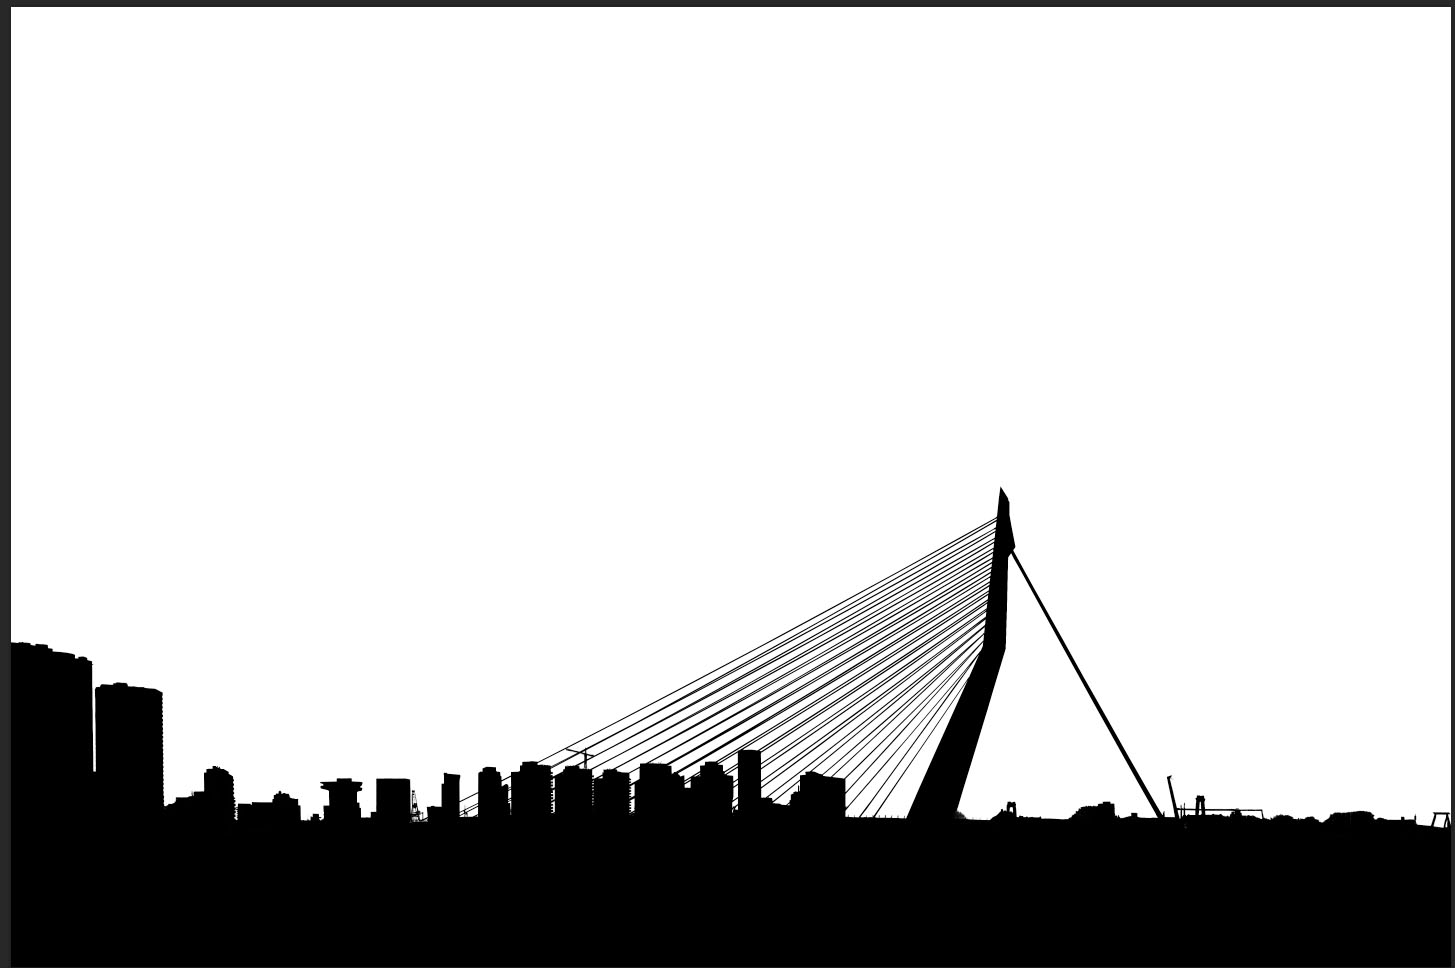 erasmus bridge selection viewed in channels photoshop